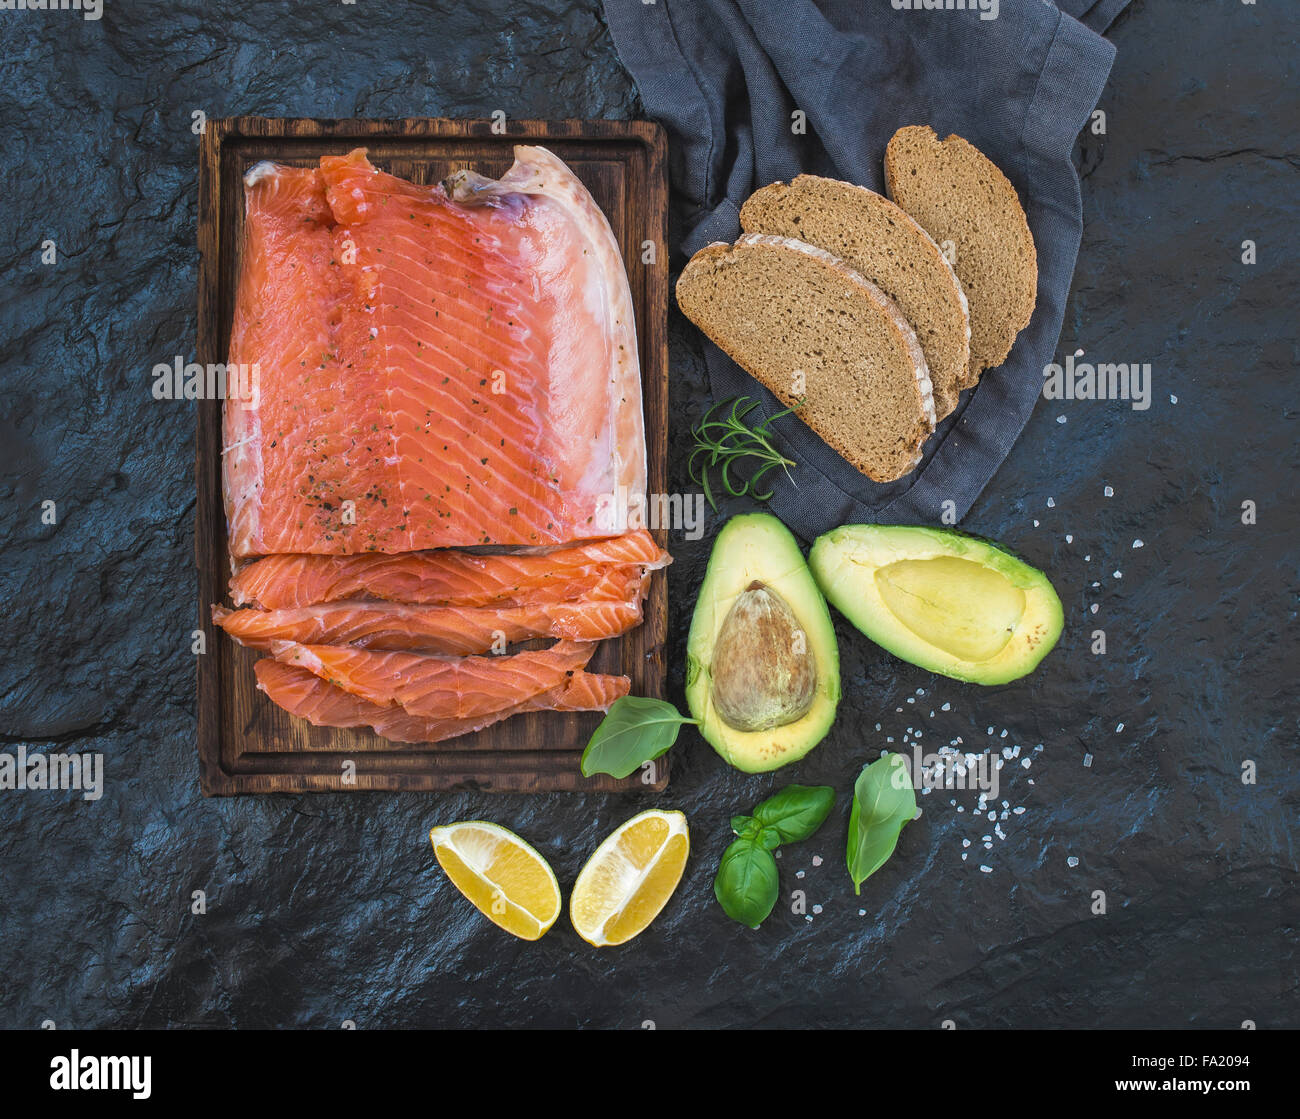 Smoked salmon filet with lemon, avocado, fresh herbs and bred on wooden serving board over dark stone backdrop, - Stock Image